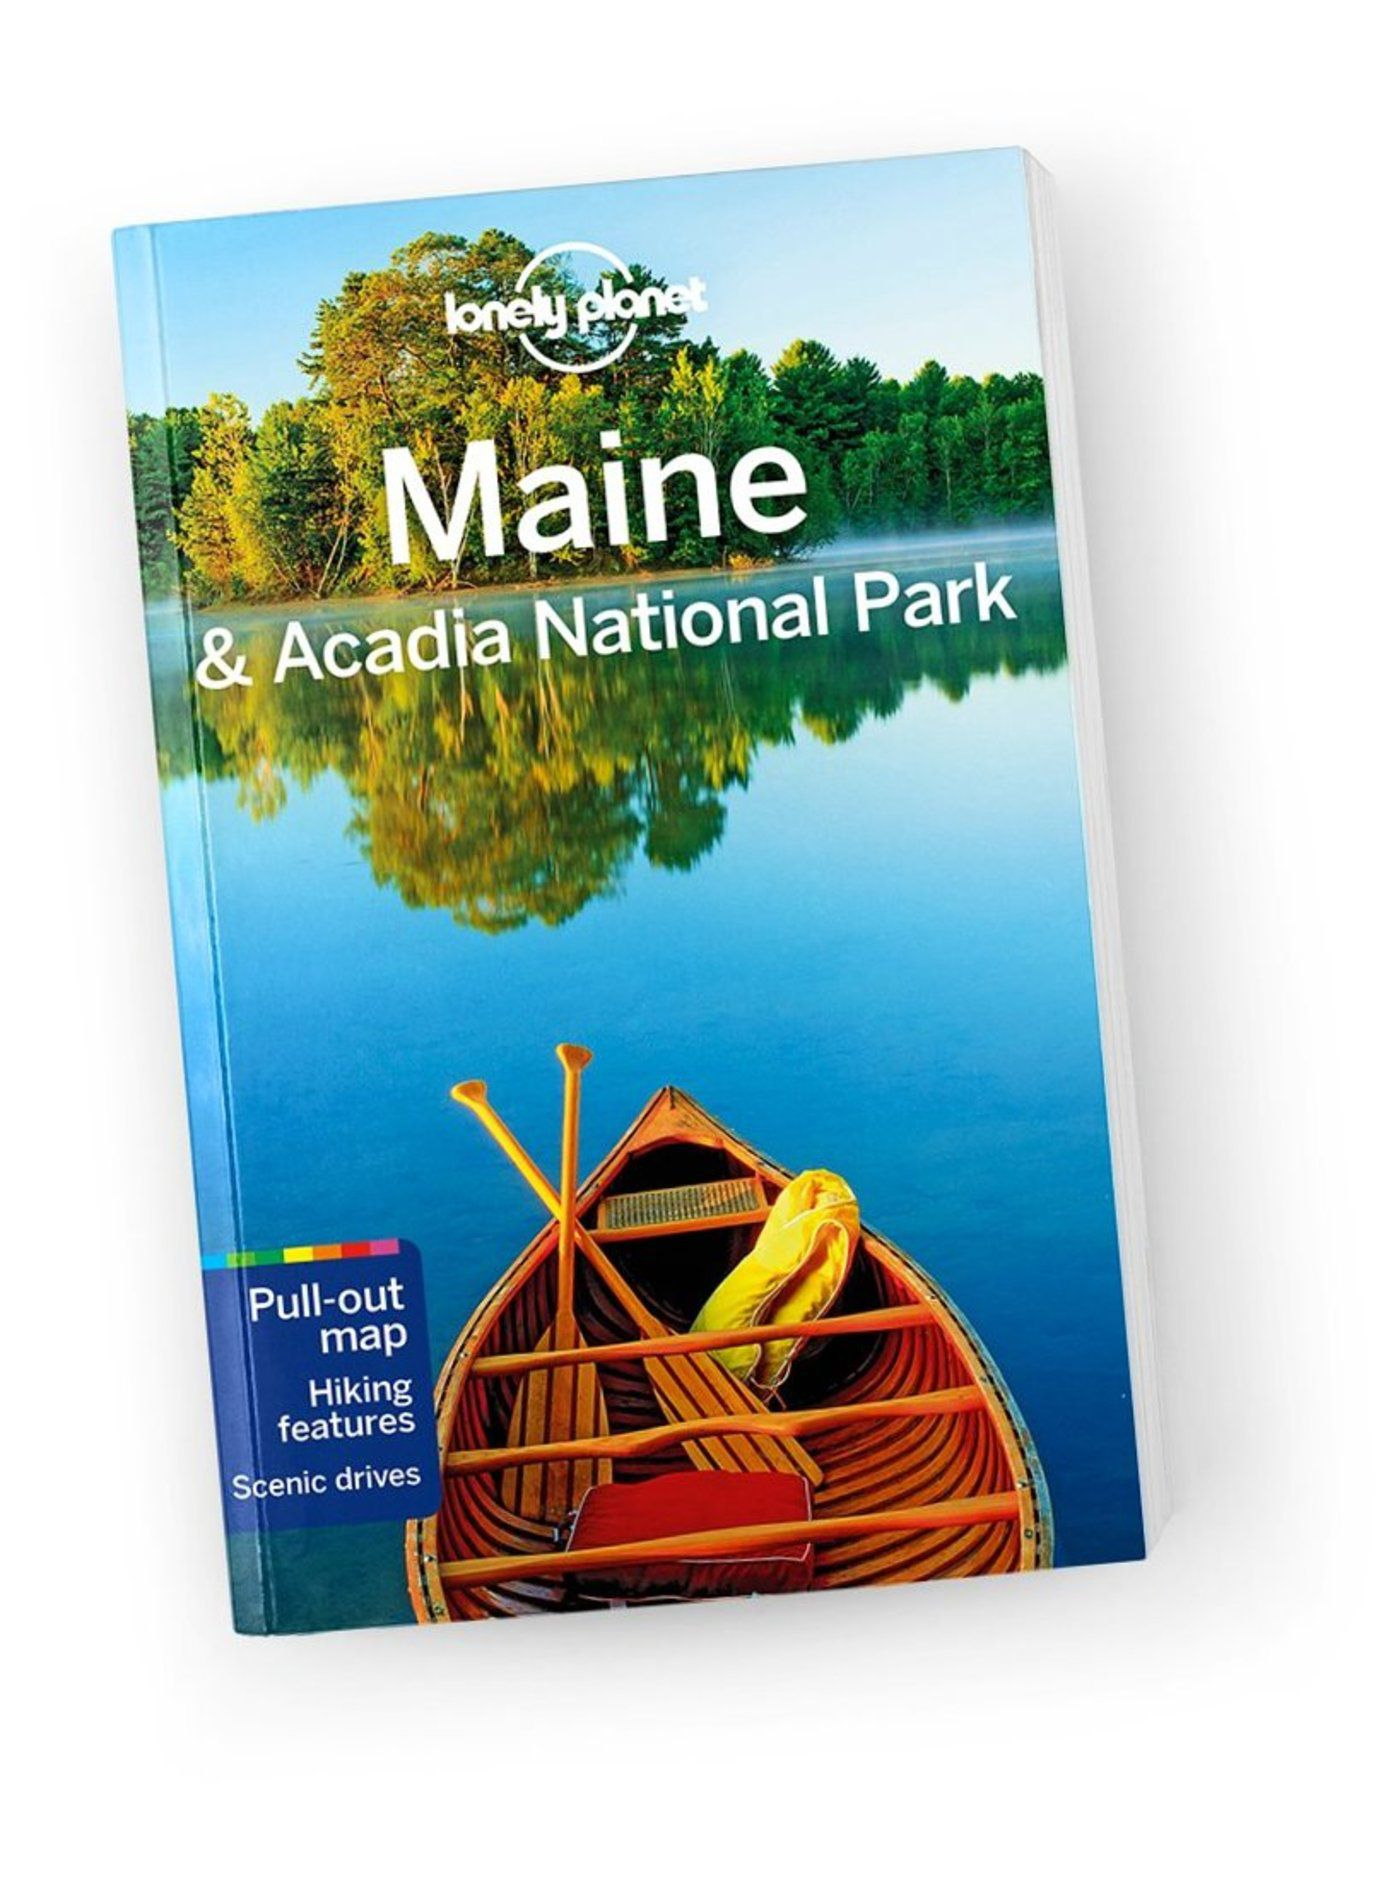 Maine & Acadia National Park travel guide